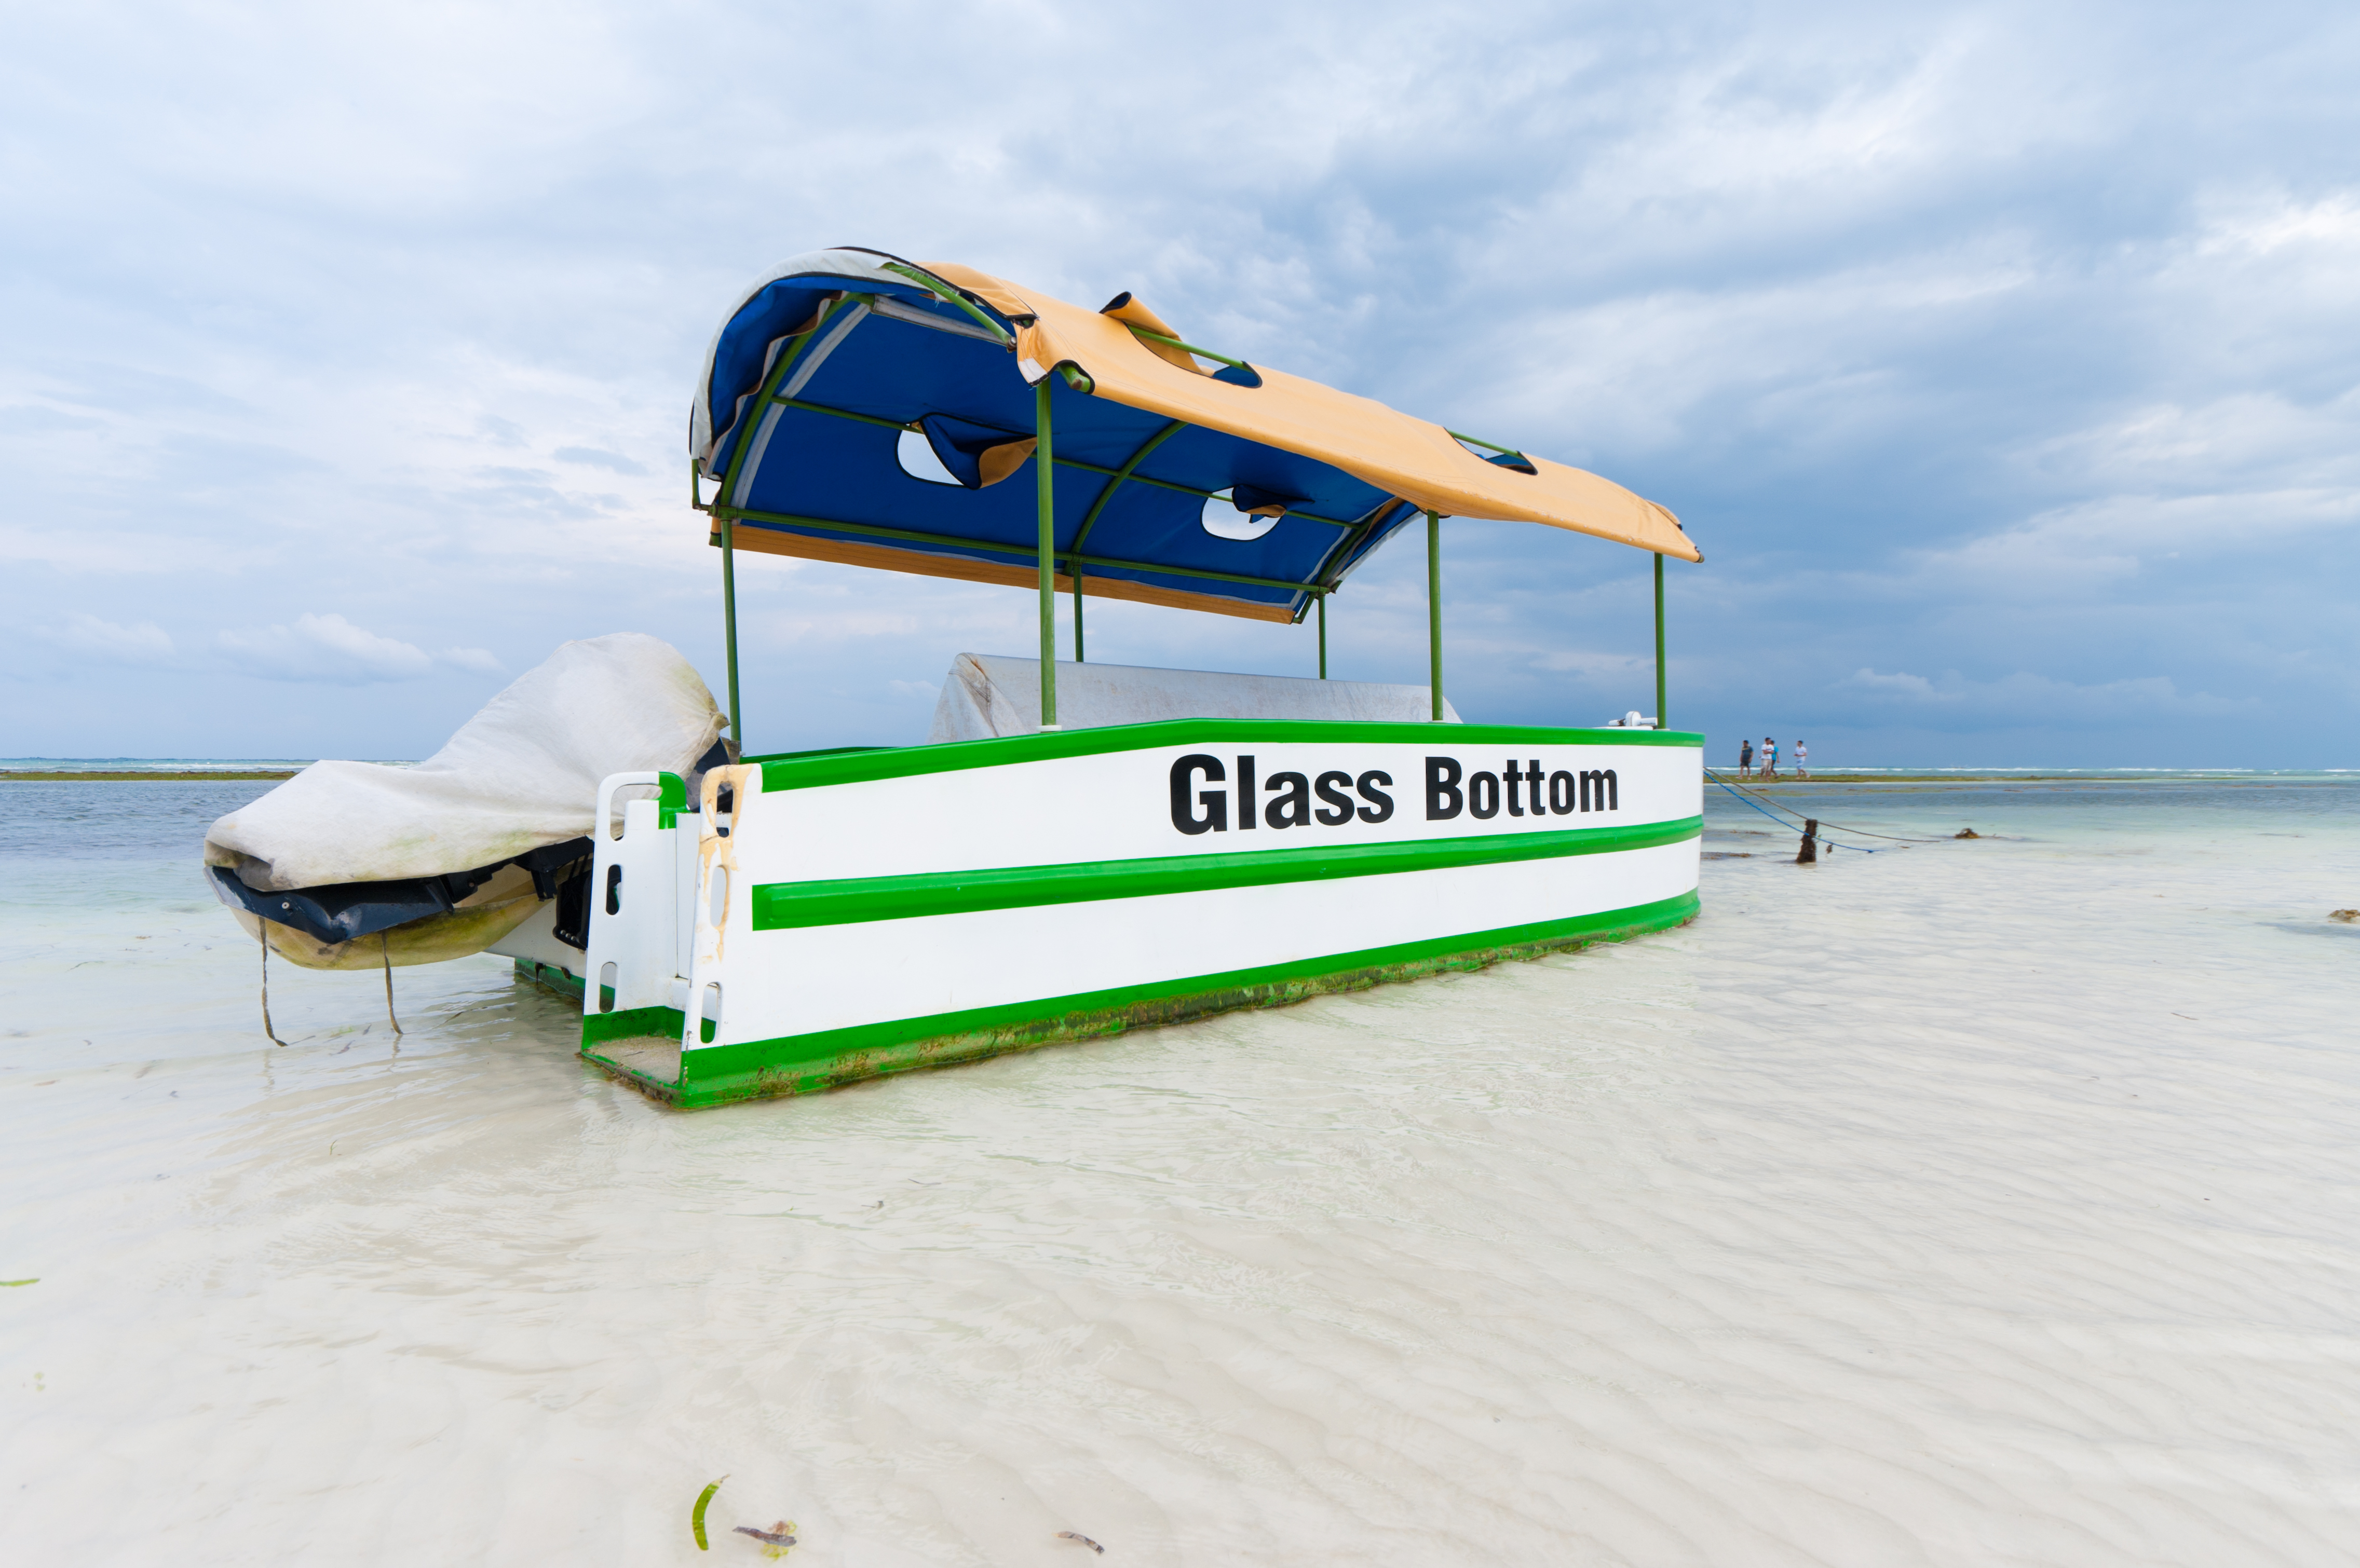 Complimentary glass bottom boat tour